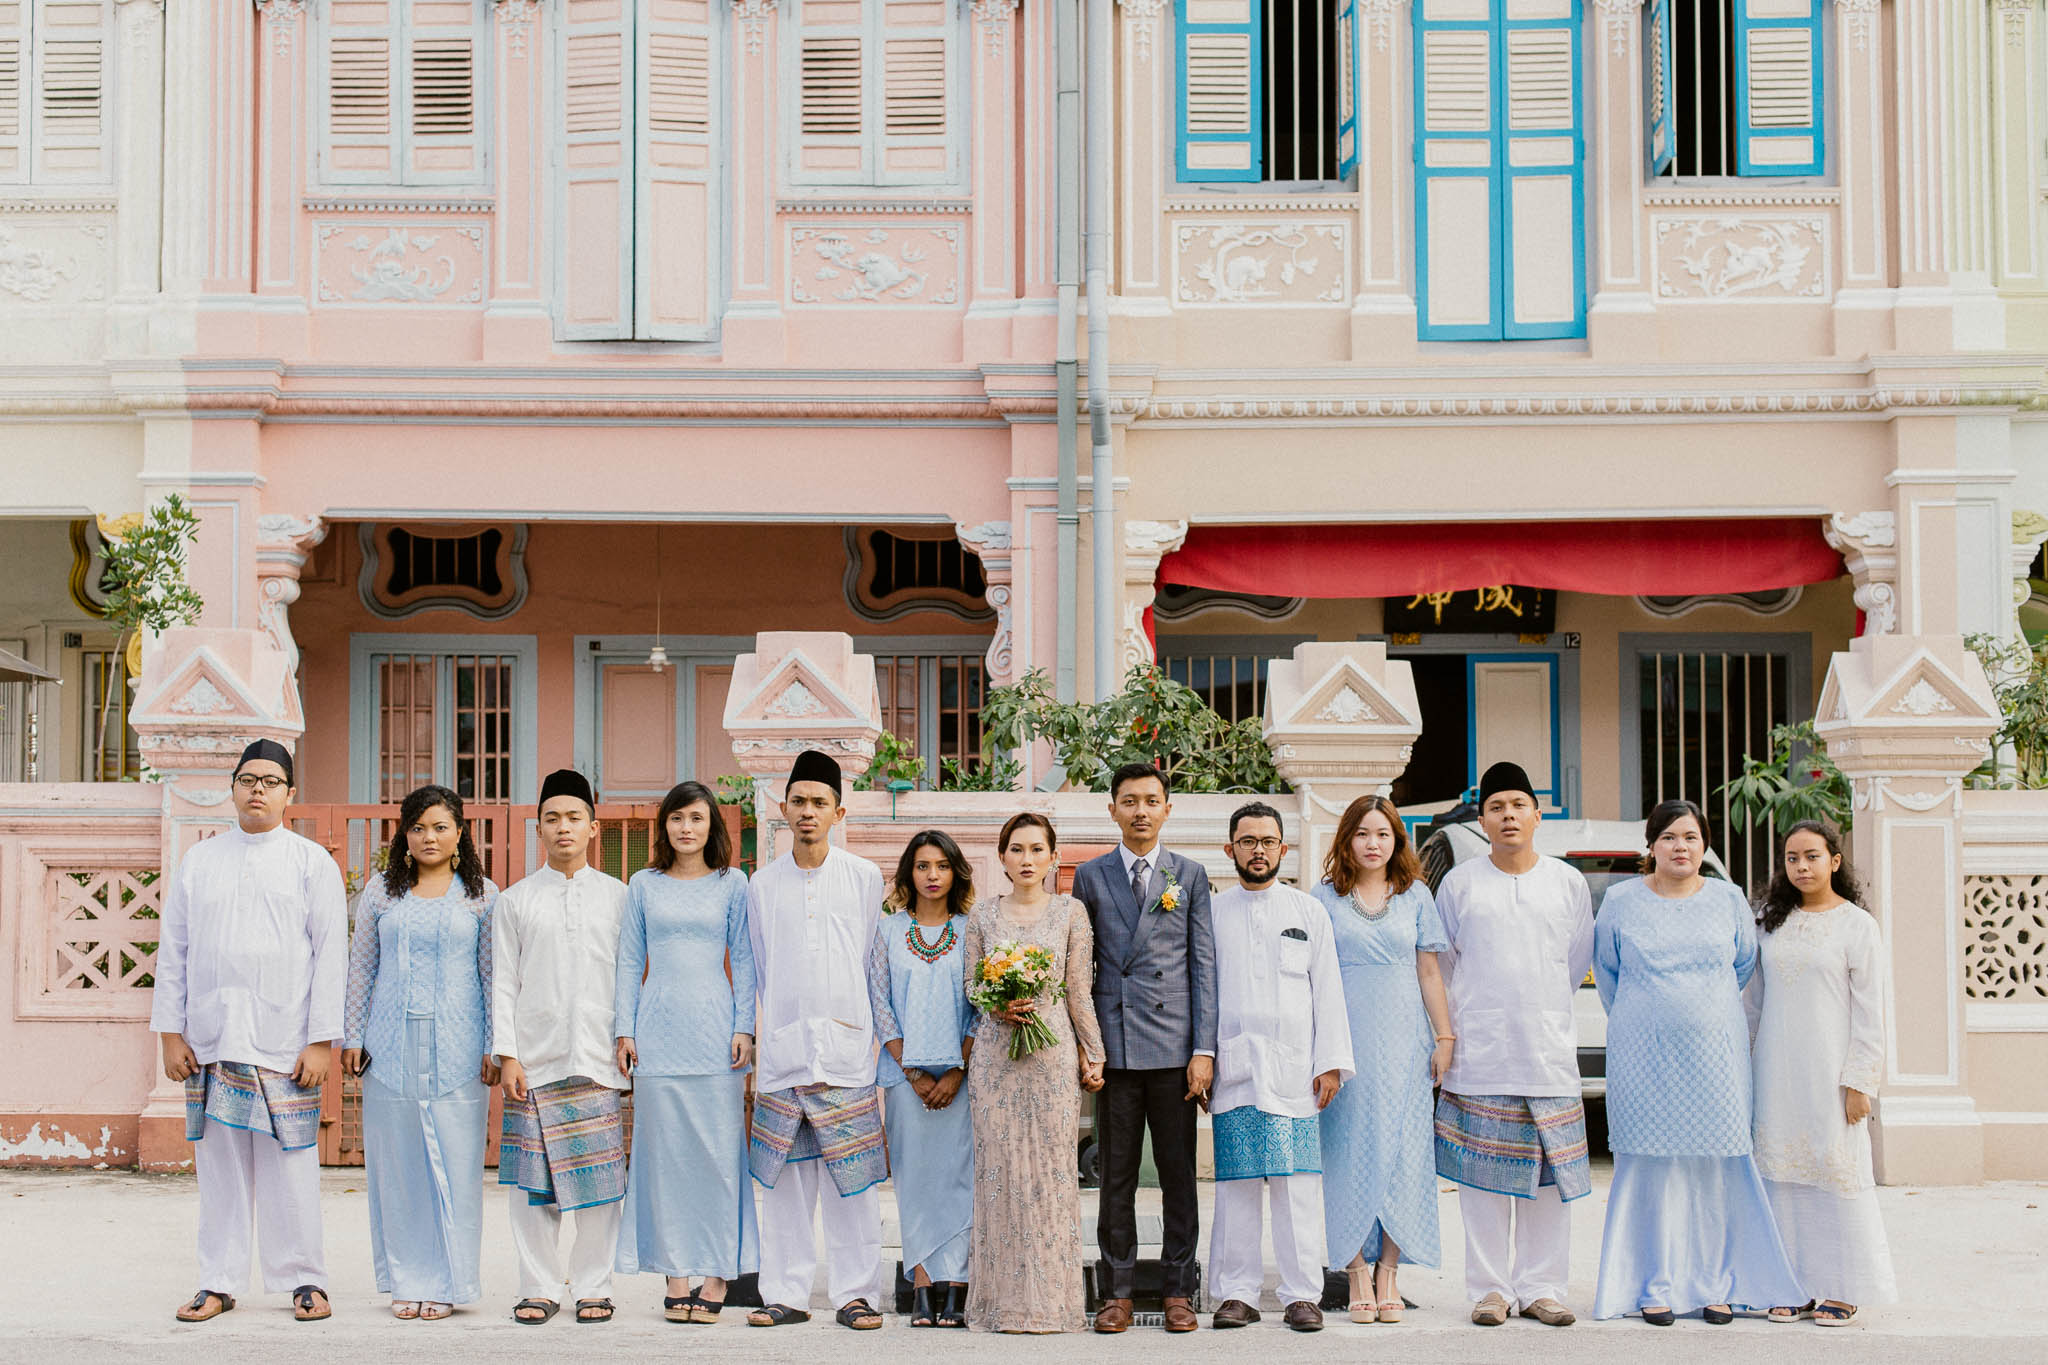 singapore-wedding-photographer-we-made-these-2016-selects-127.jpg